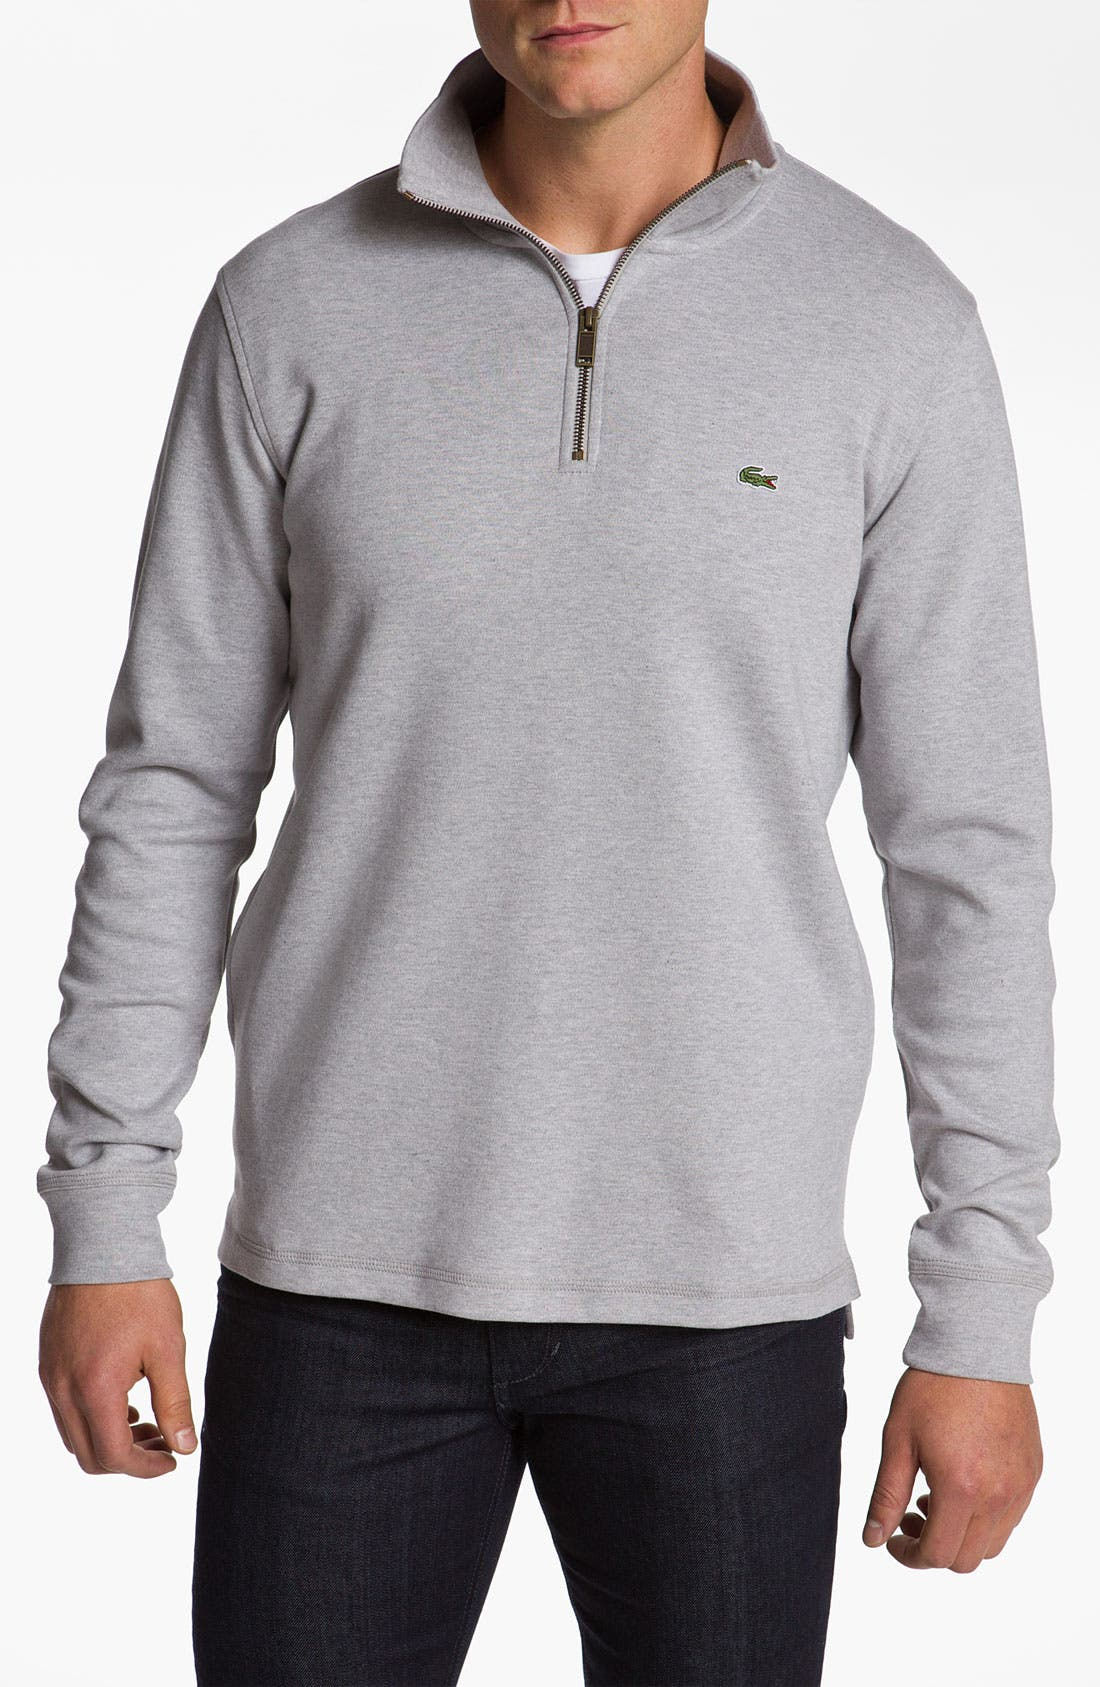 Alternate Image 1 Selected - Lacoste Half Zip Pullover